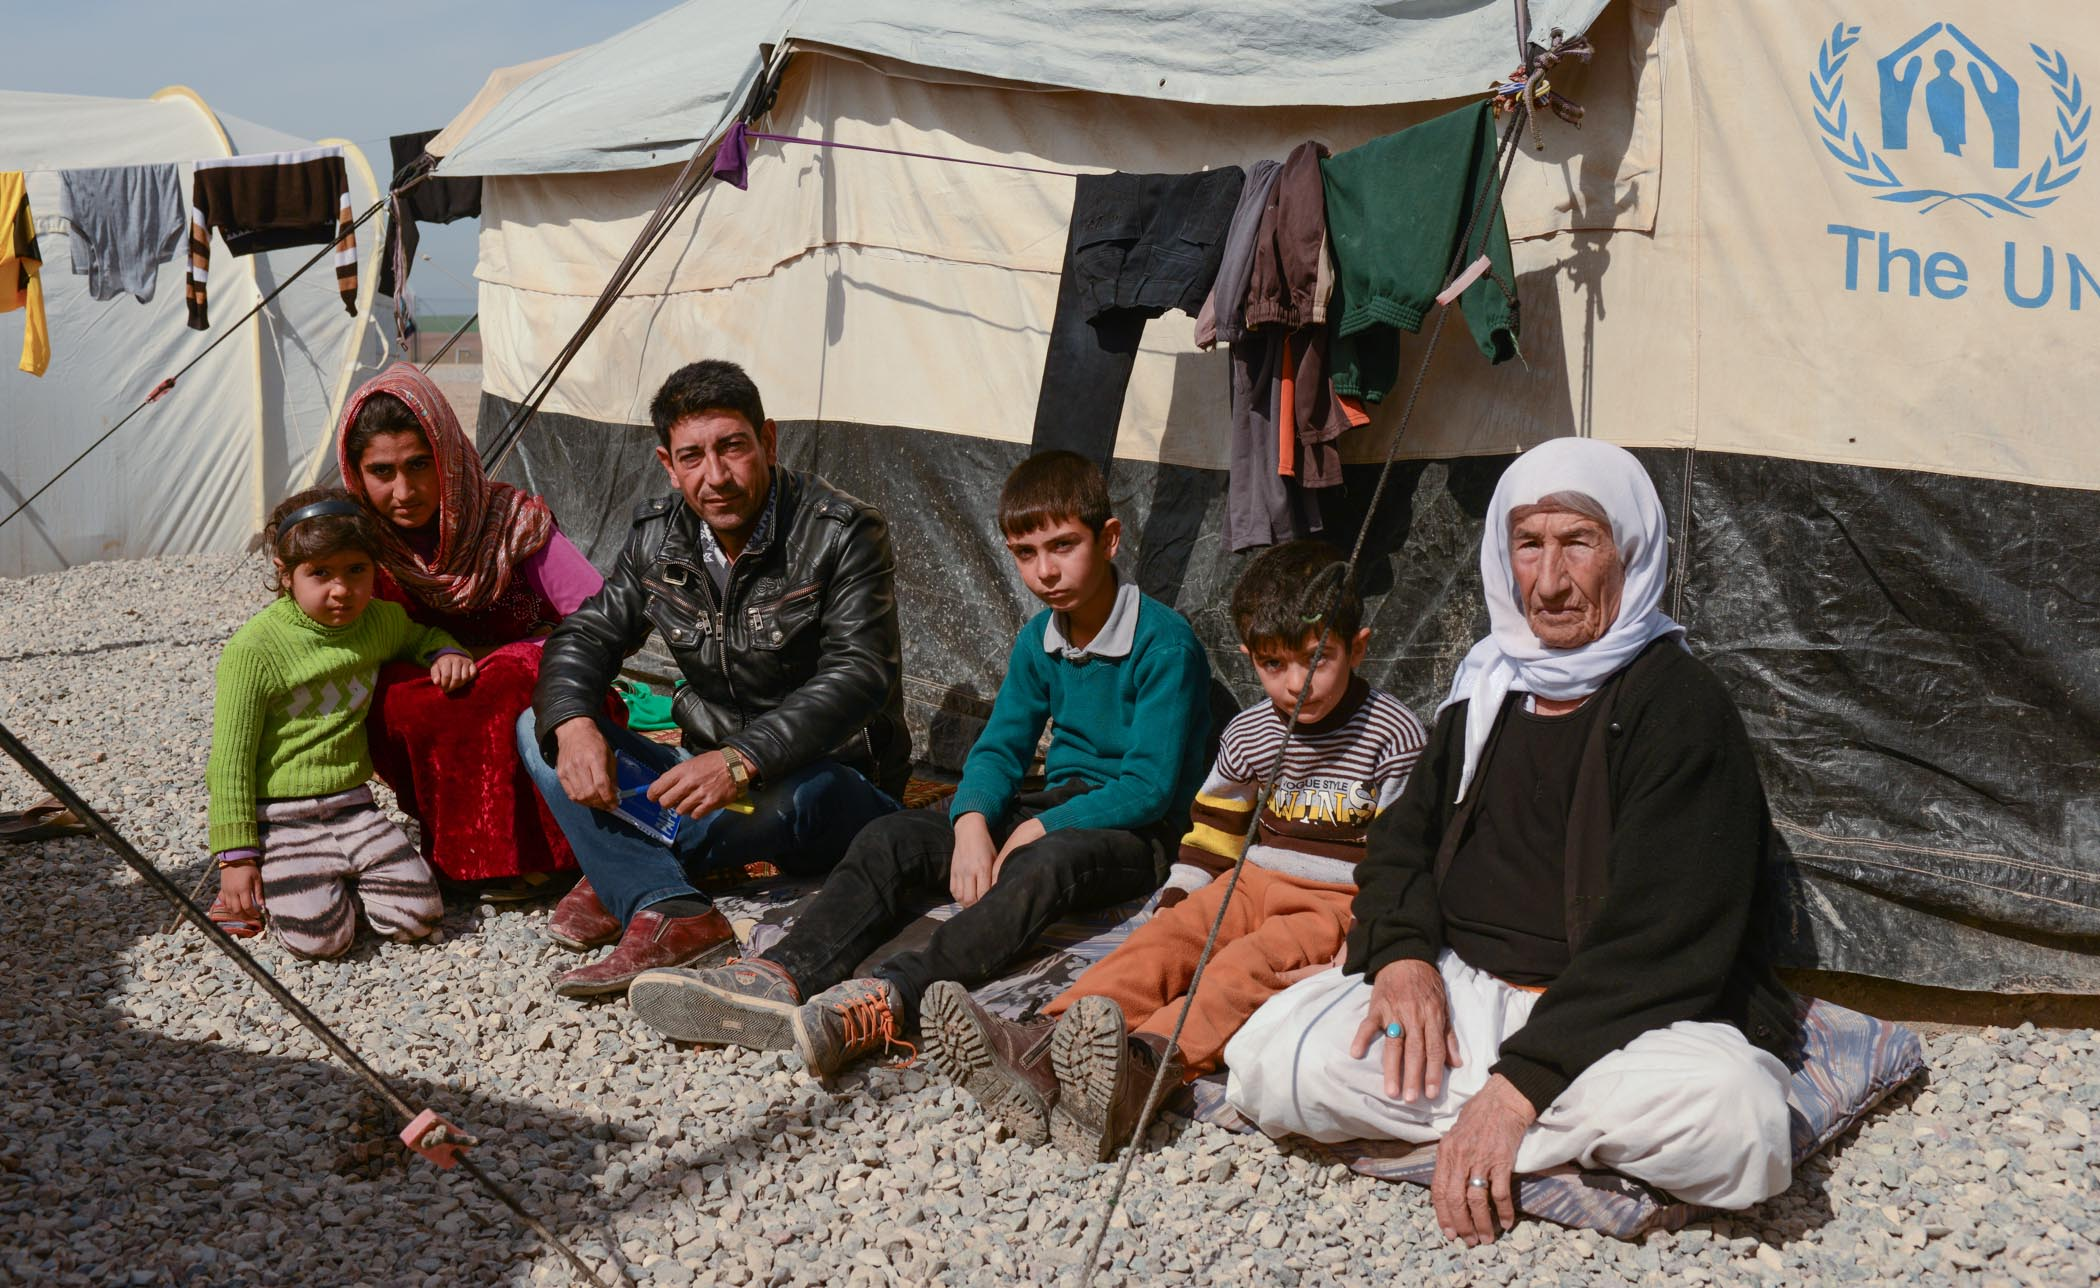 Displaced Family in the Middle East